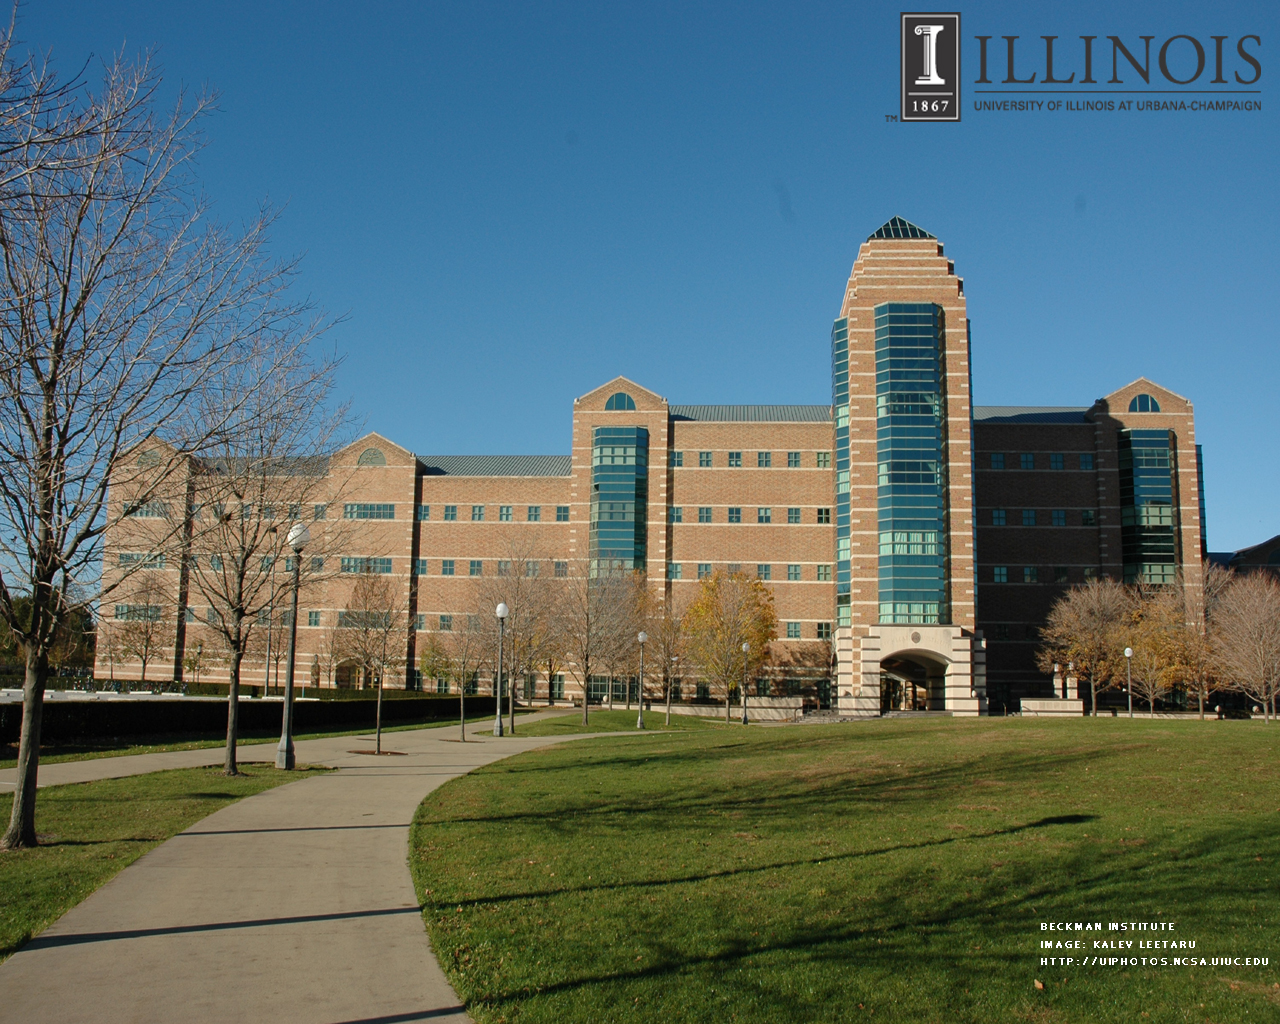 UIHistories Project Virtual Tour at the University of Illinois 1280x1024